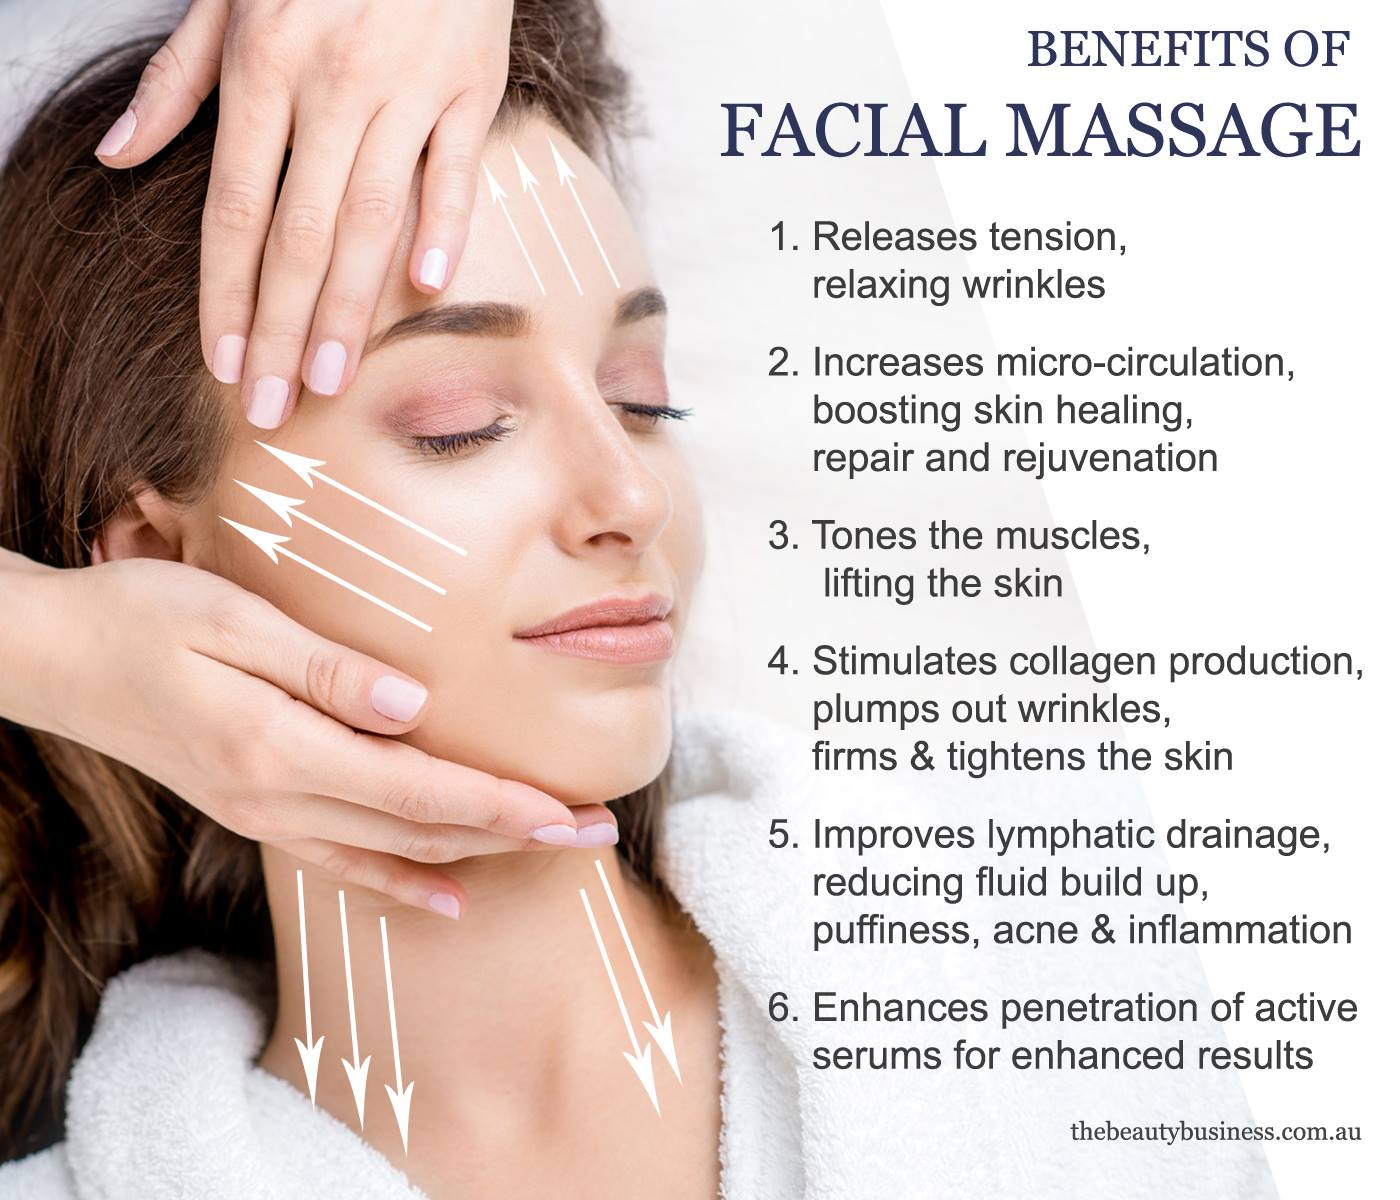 Lymphatic drainage facial massage